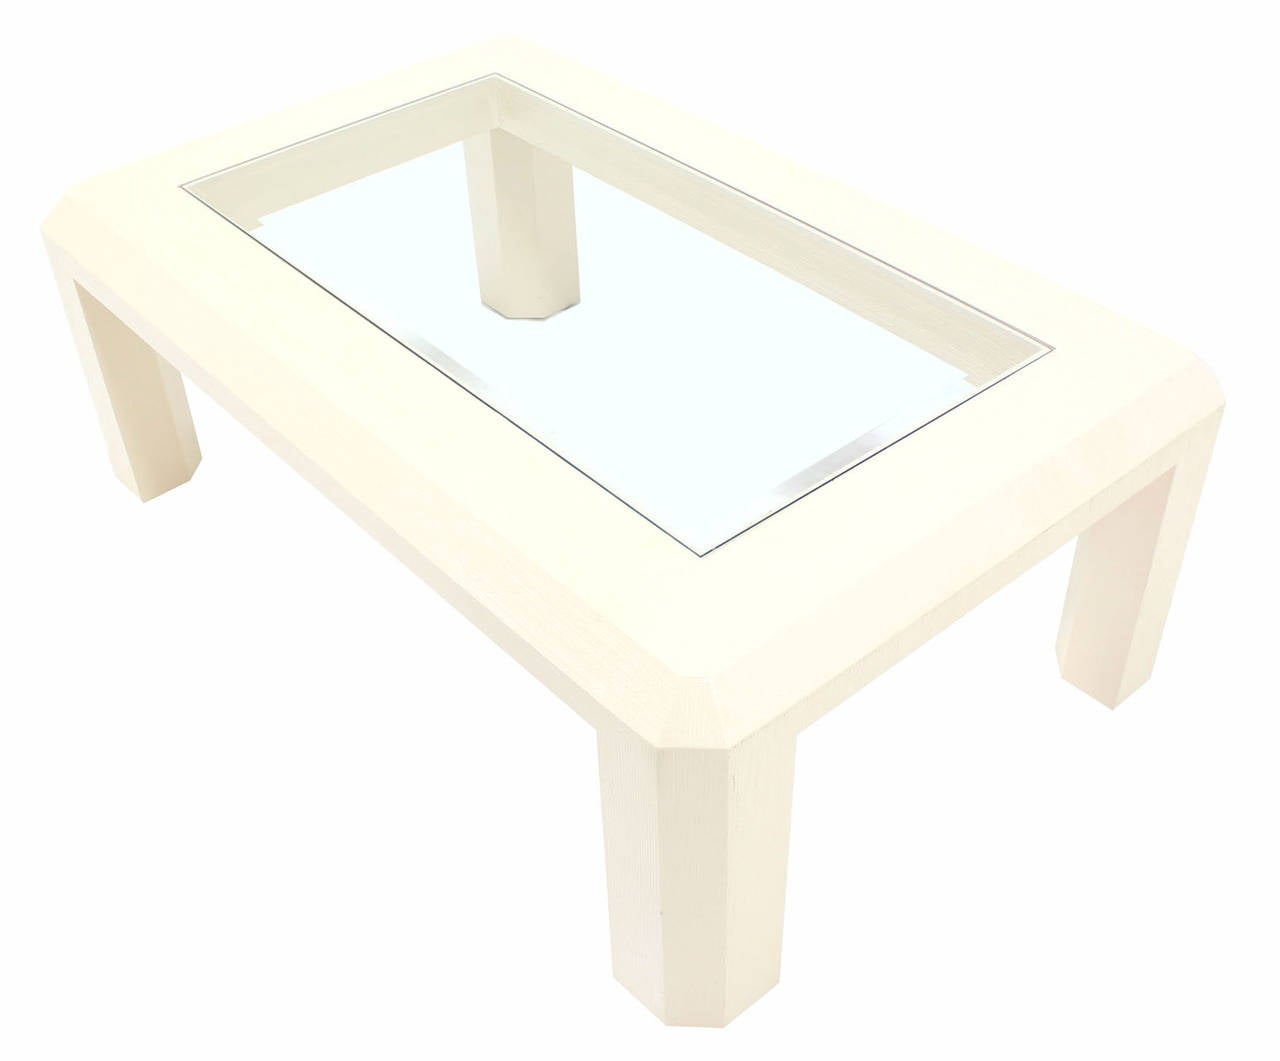 Textured Grass Cloth Rectangular Glass Top Coffee Table For Sale At 1stdibs